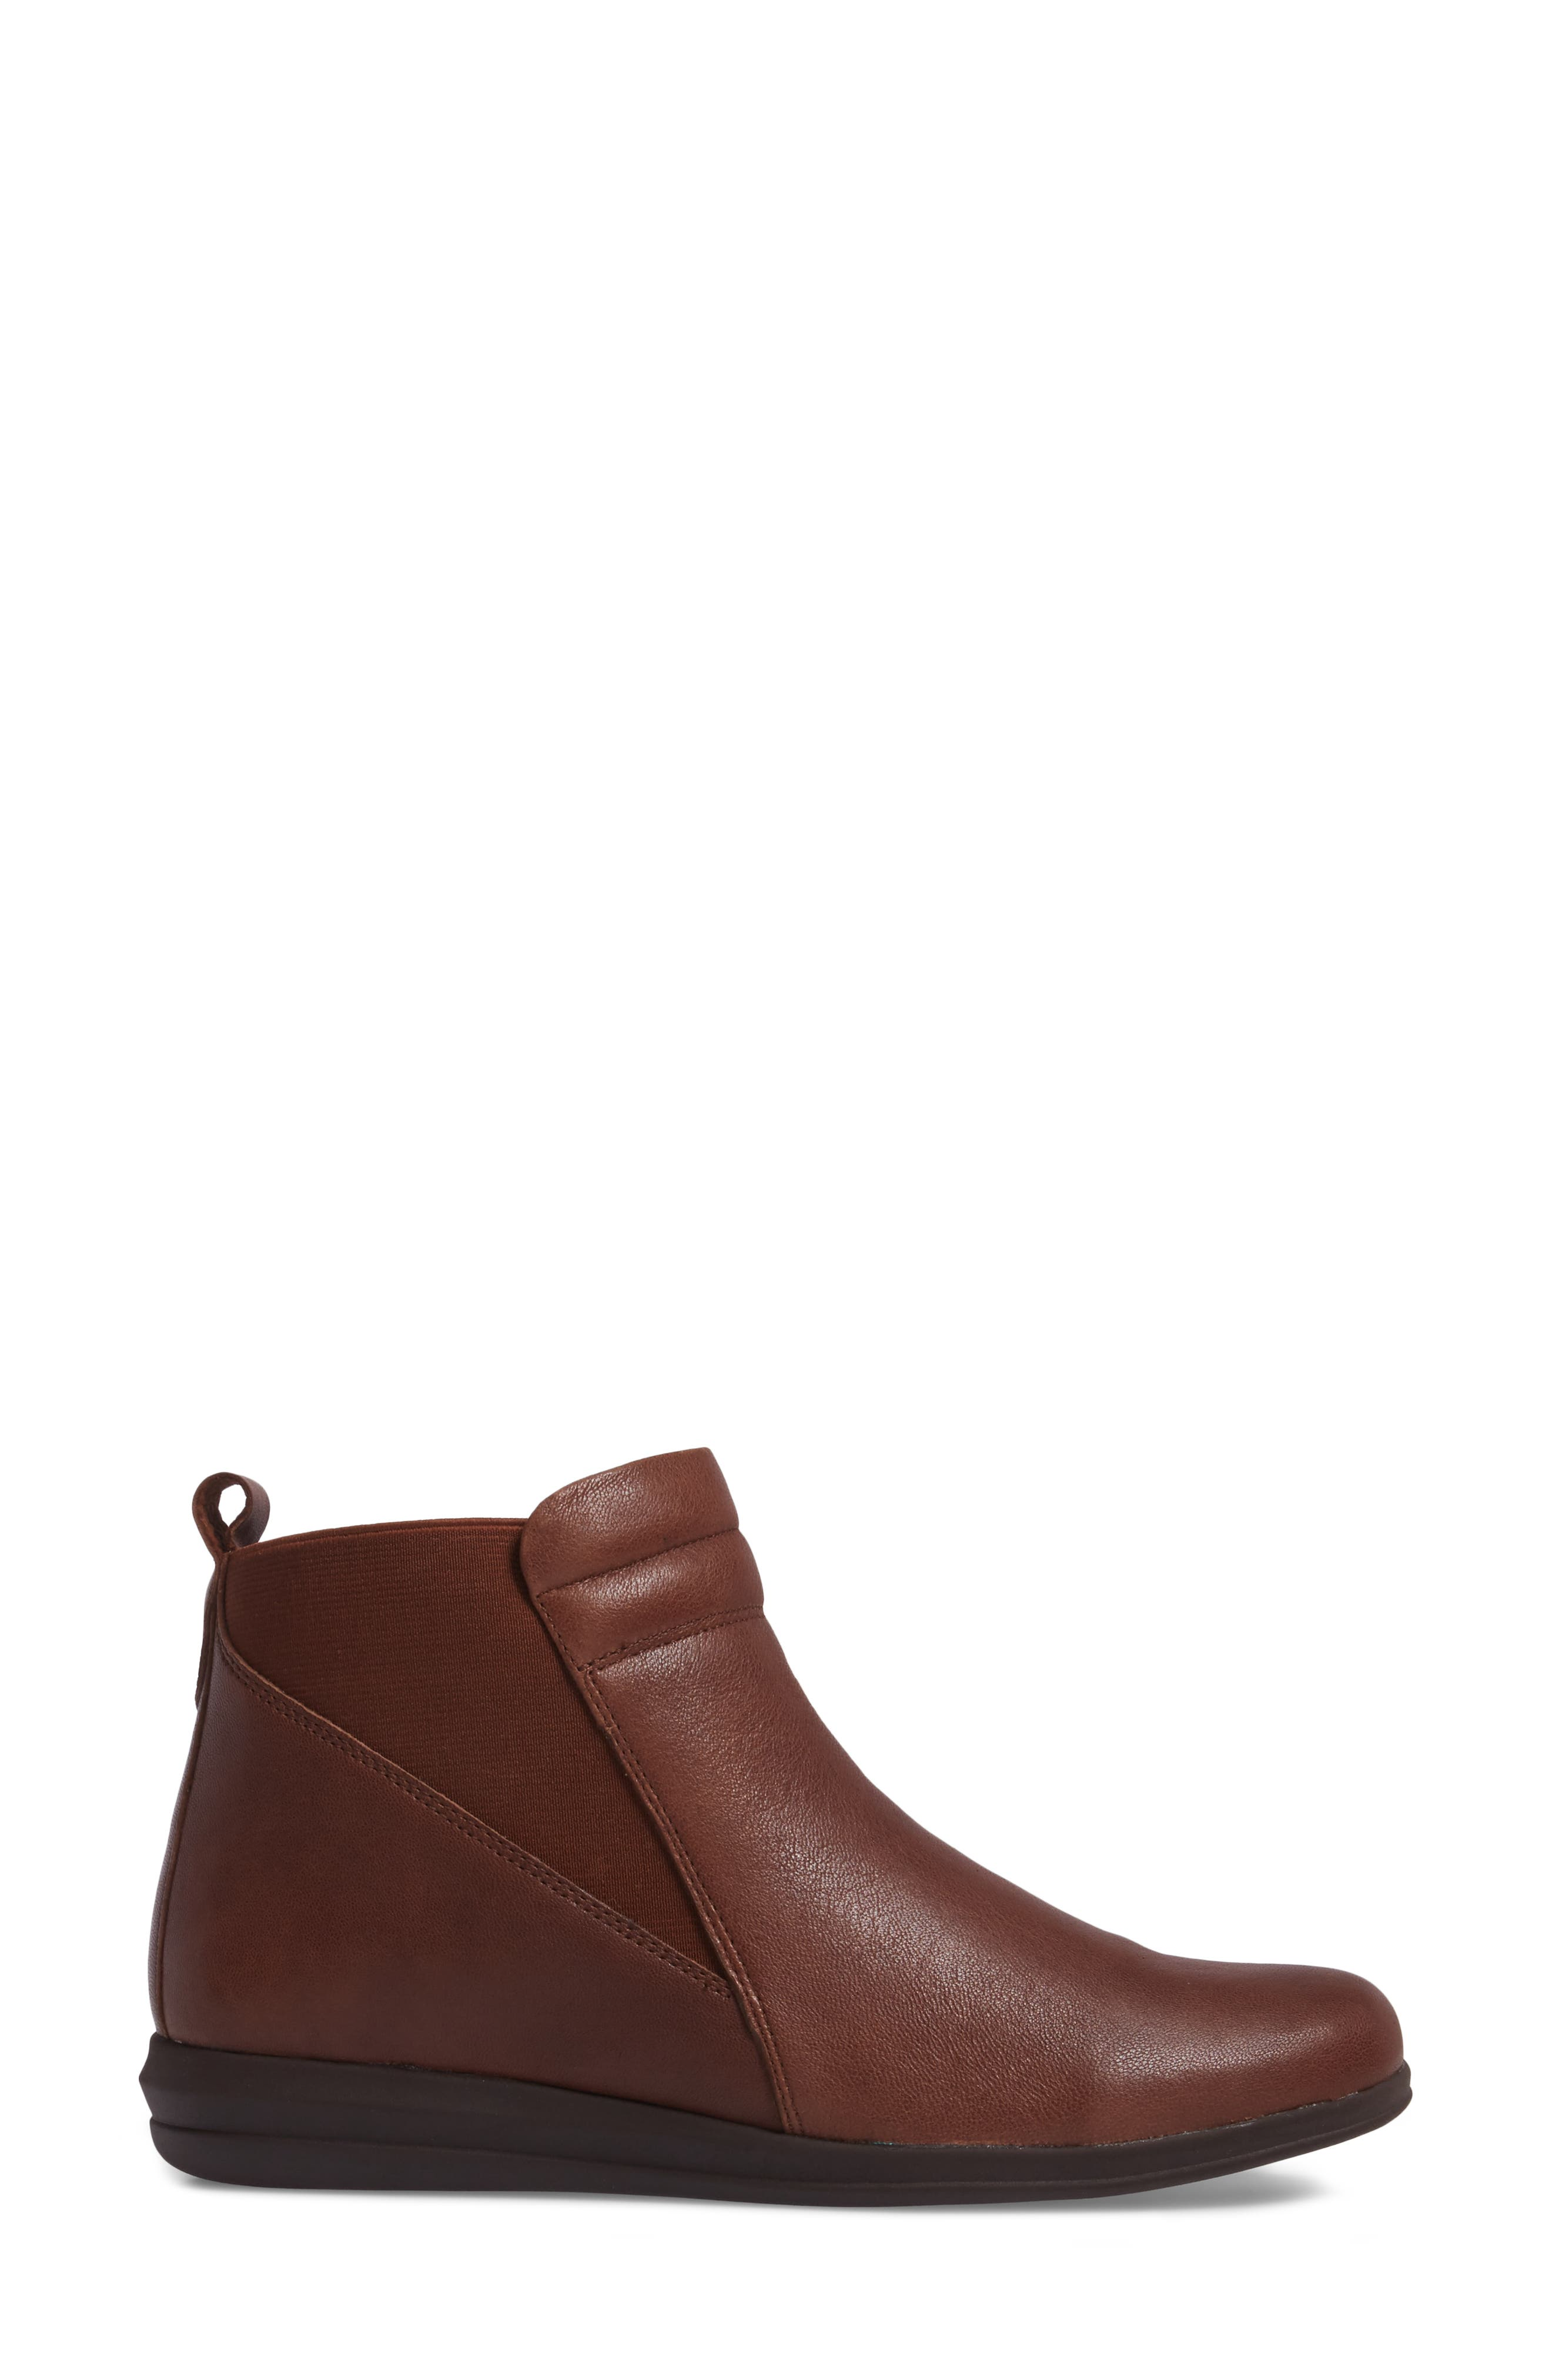 Cactus Bootie,                             Alternate thumbnail 3, color,                             Brown Leather